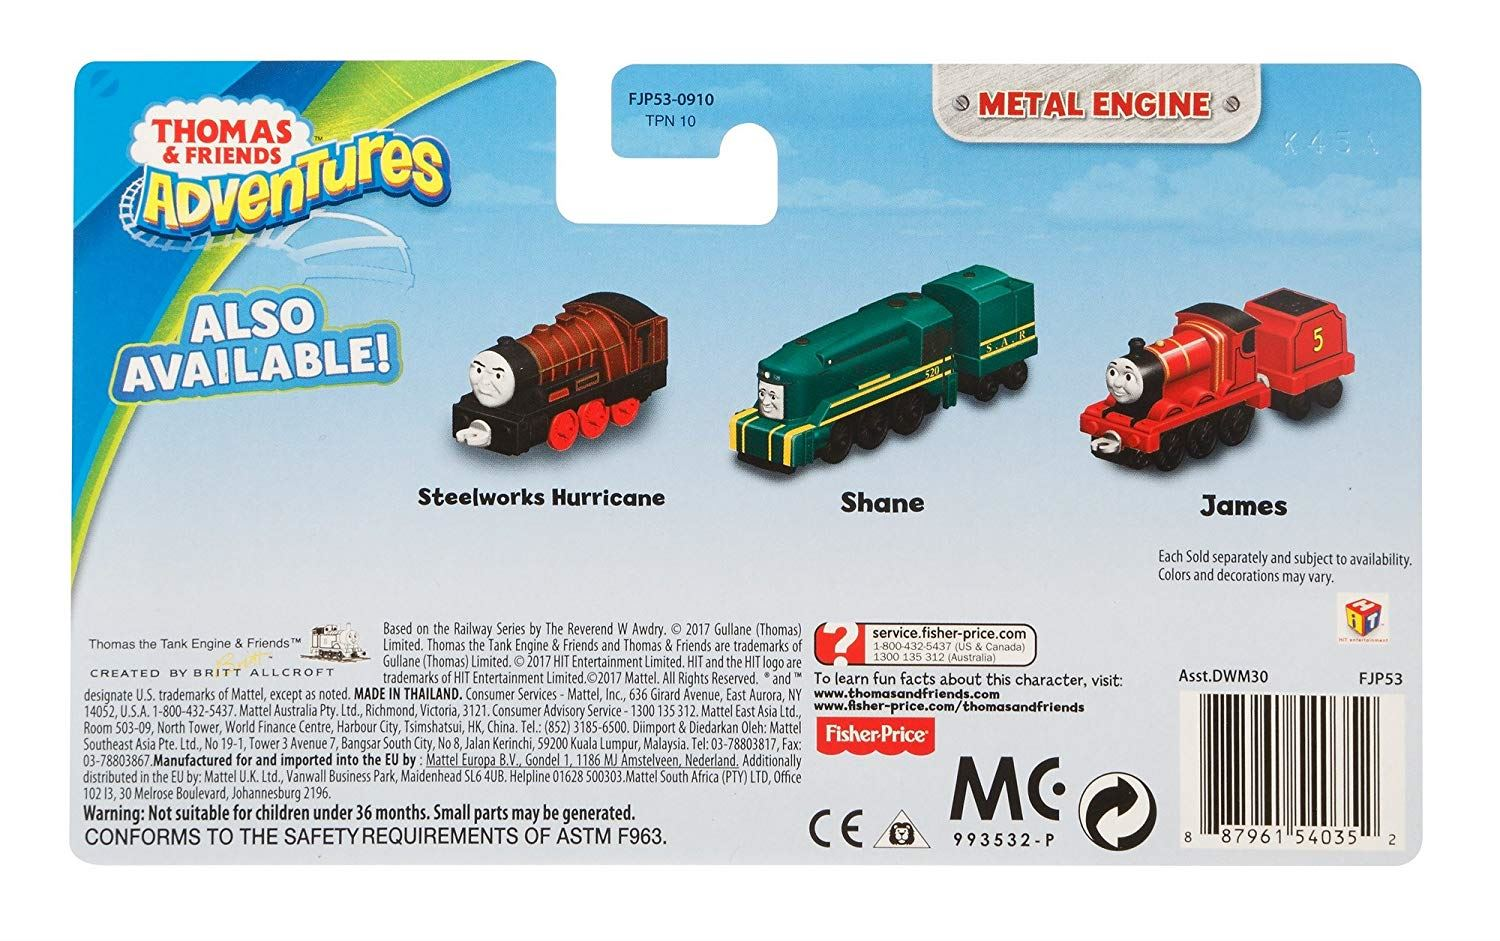 Thomas-amp-Friends-Adventures-Ferdinand-lexi-Shane-Dash-Huge-Bill-Trains Indexbild 29